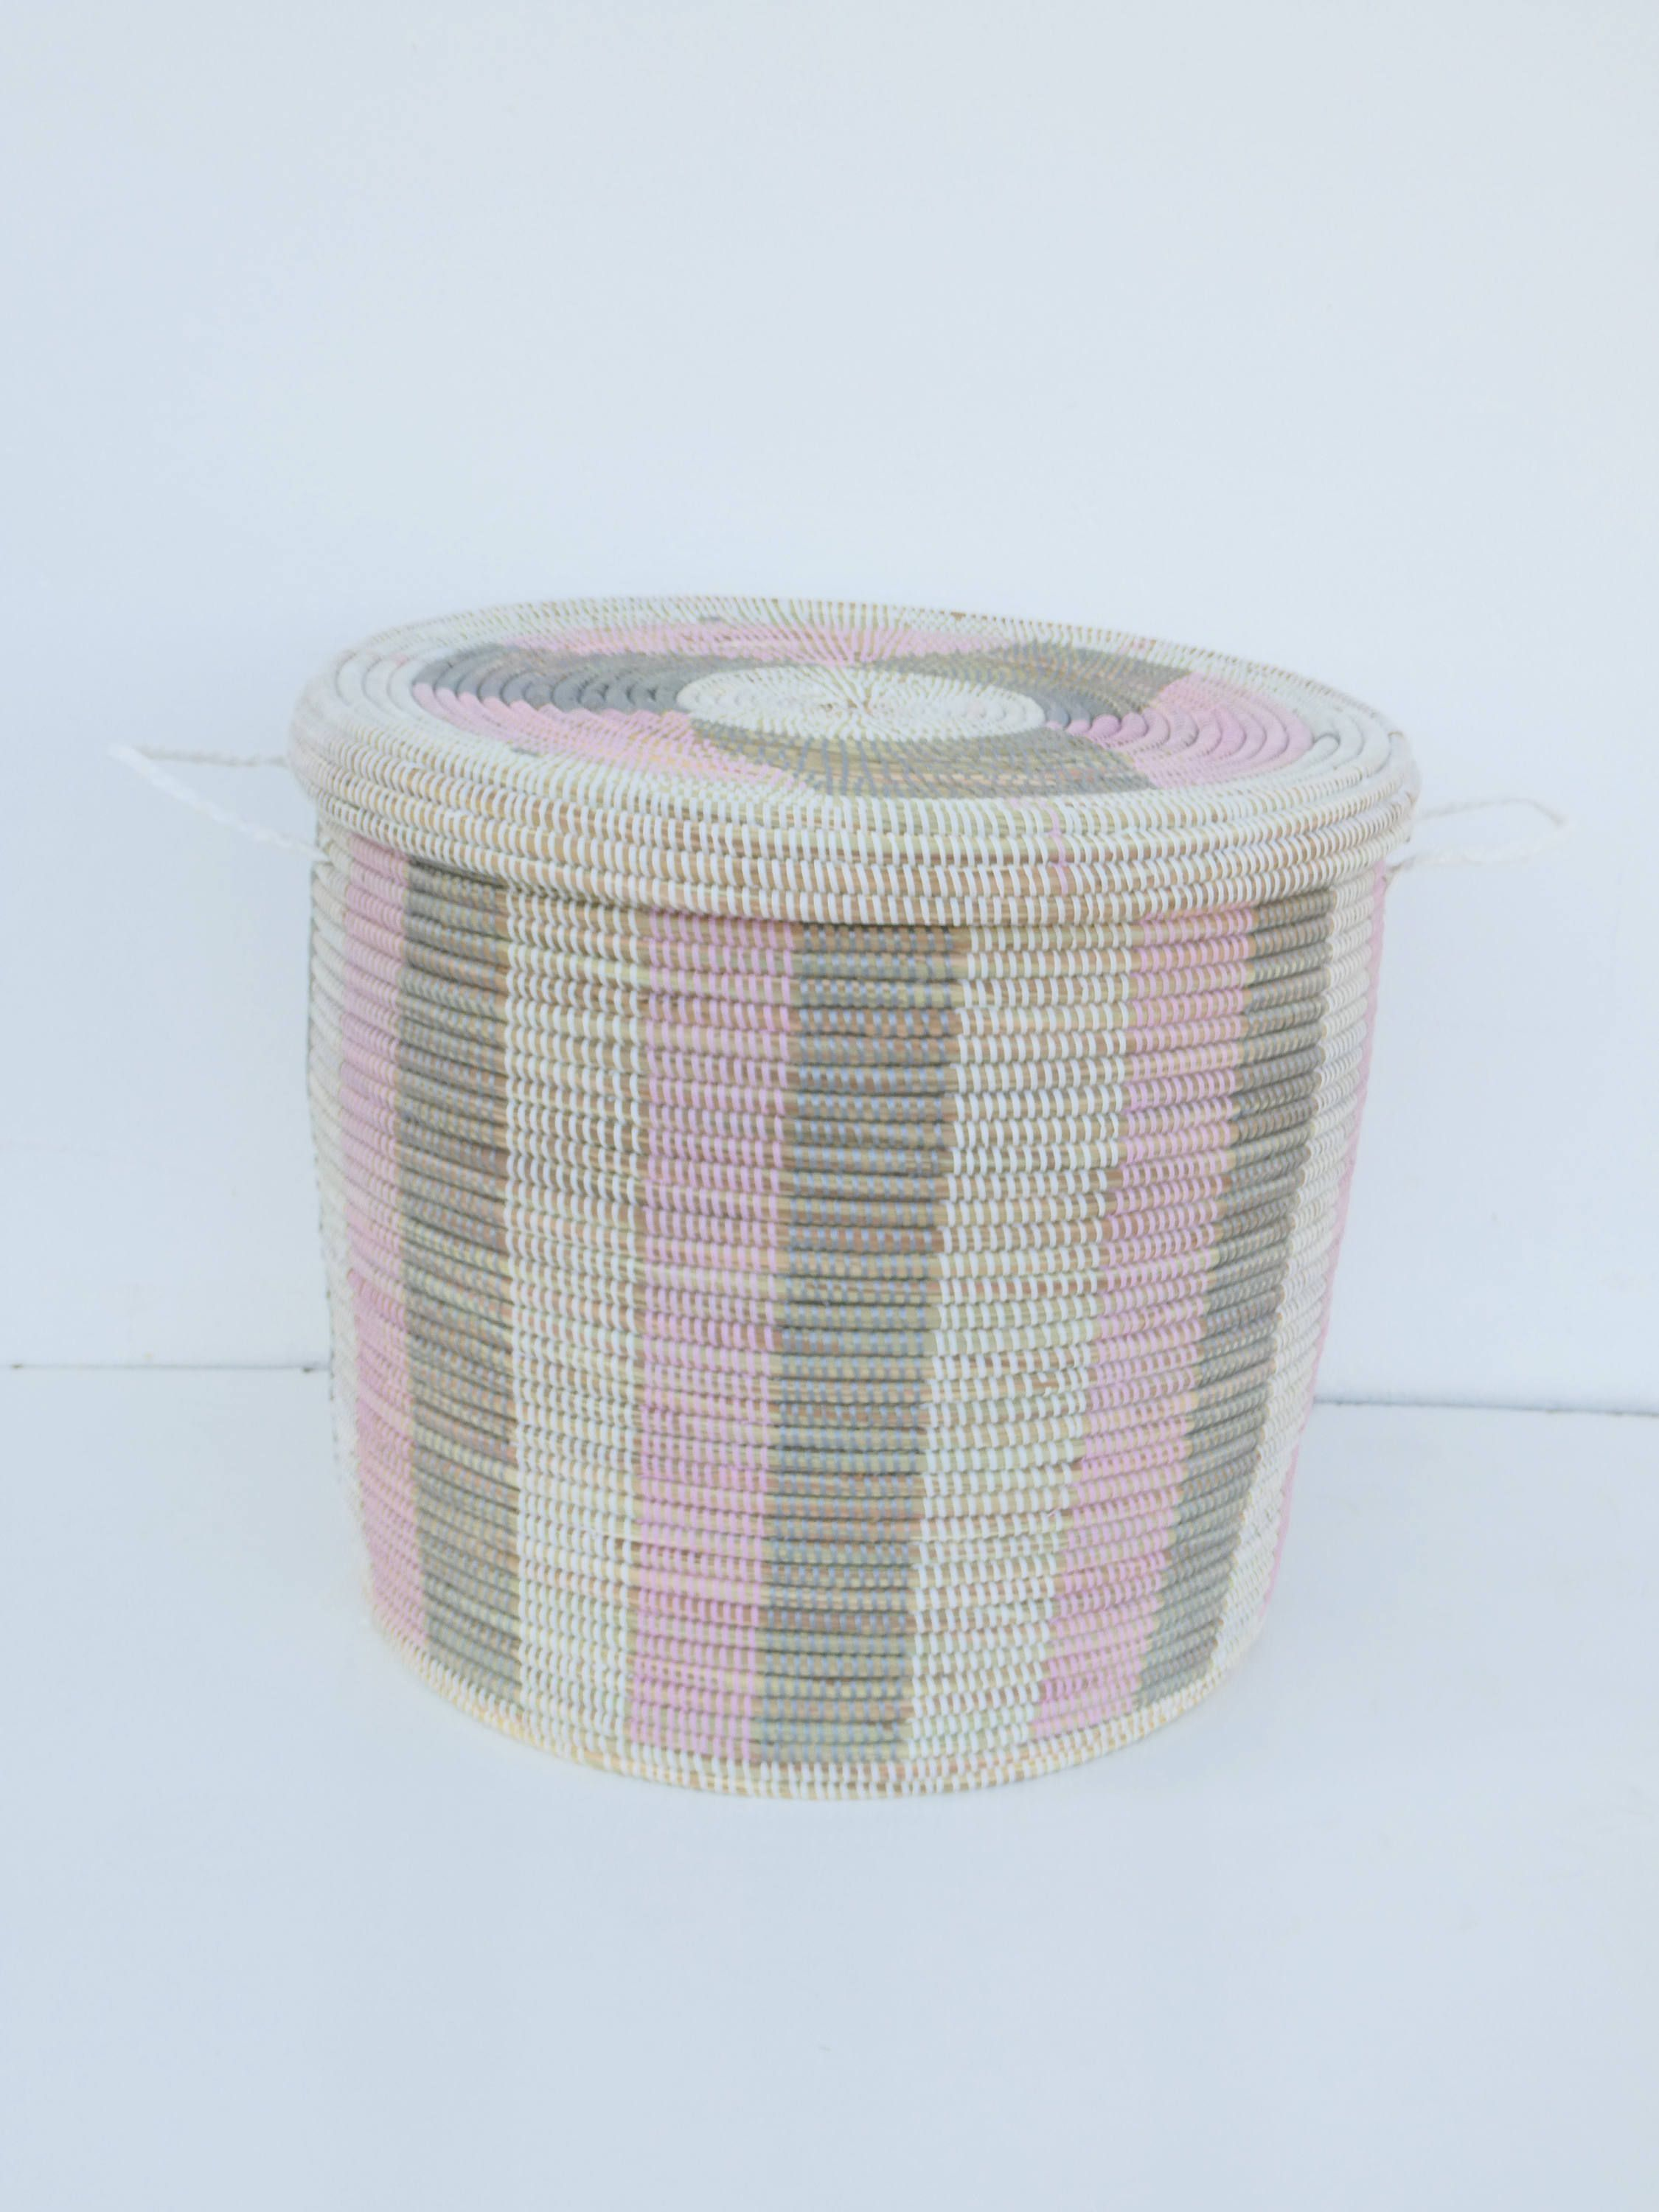 African Basket With Flat Lid In Bubble Gum Pink And Silver Grey